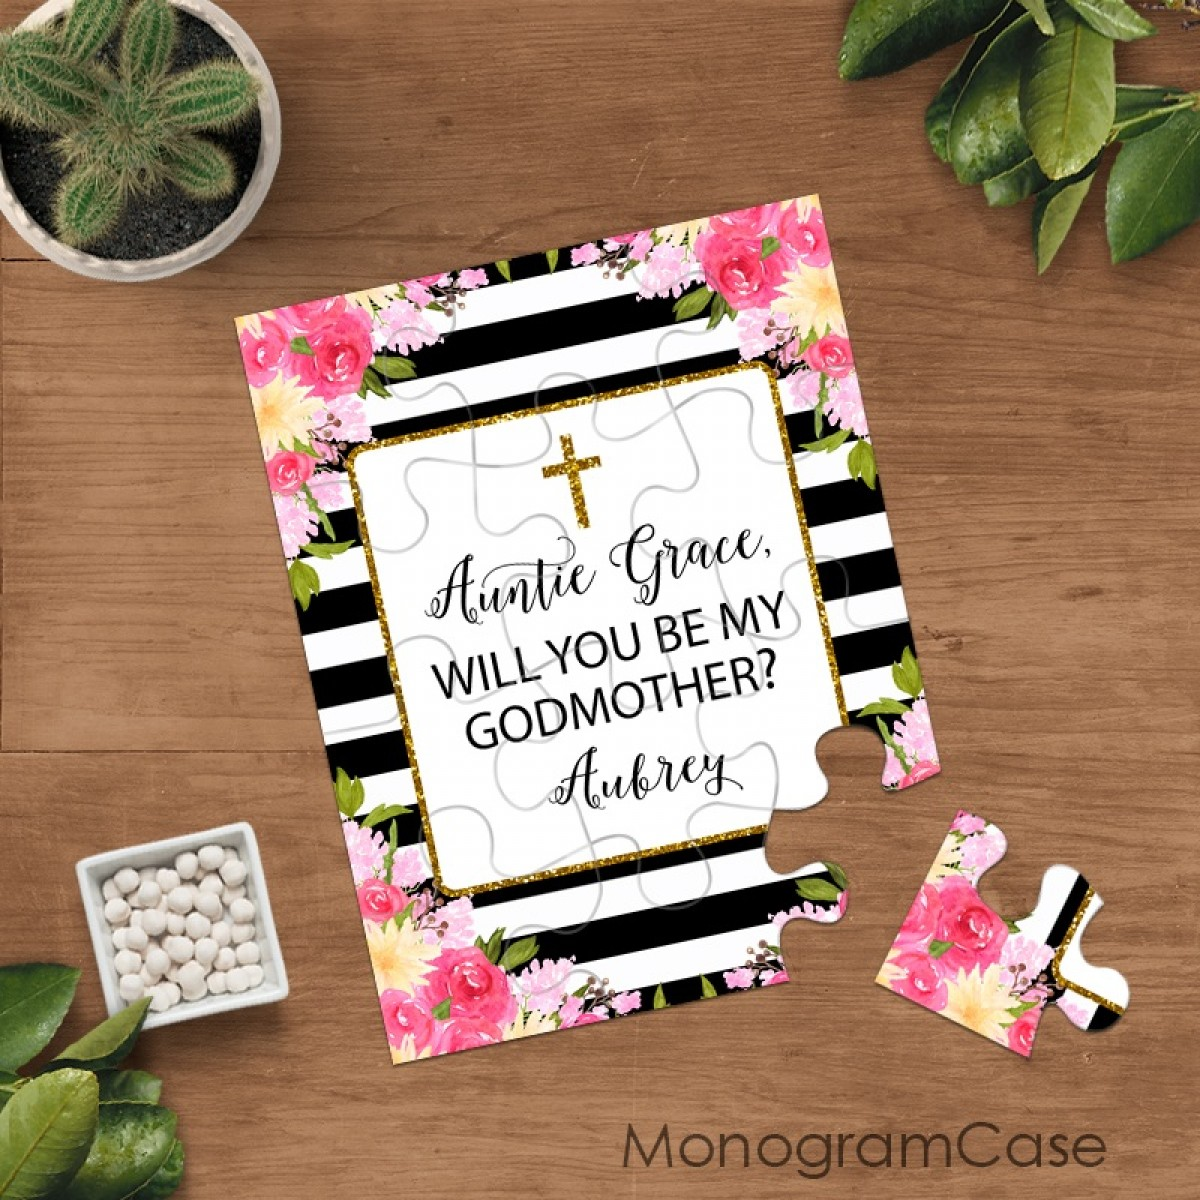 Will you be my godmother christening puzzle card new thank you for being my godmother christening puzzle m4hsunfo